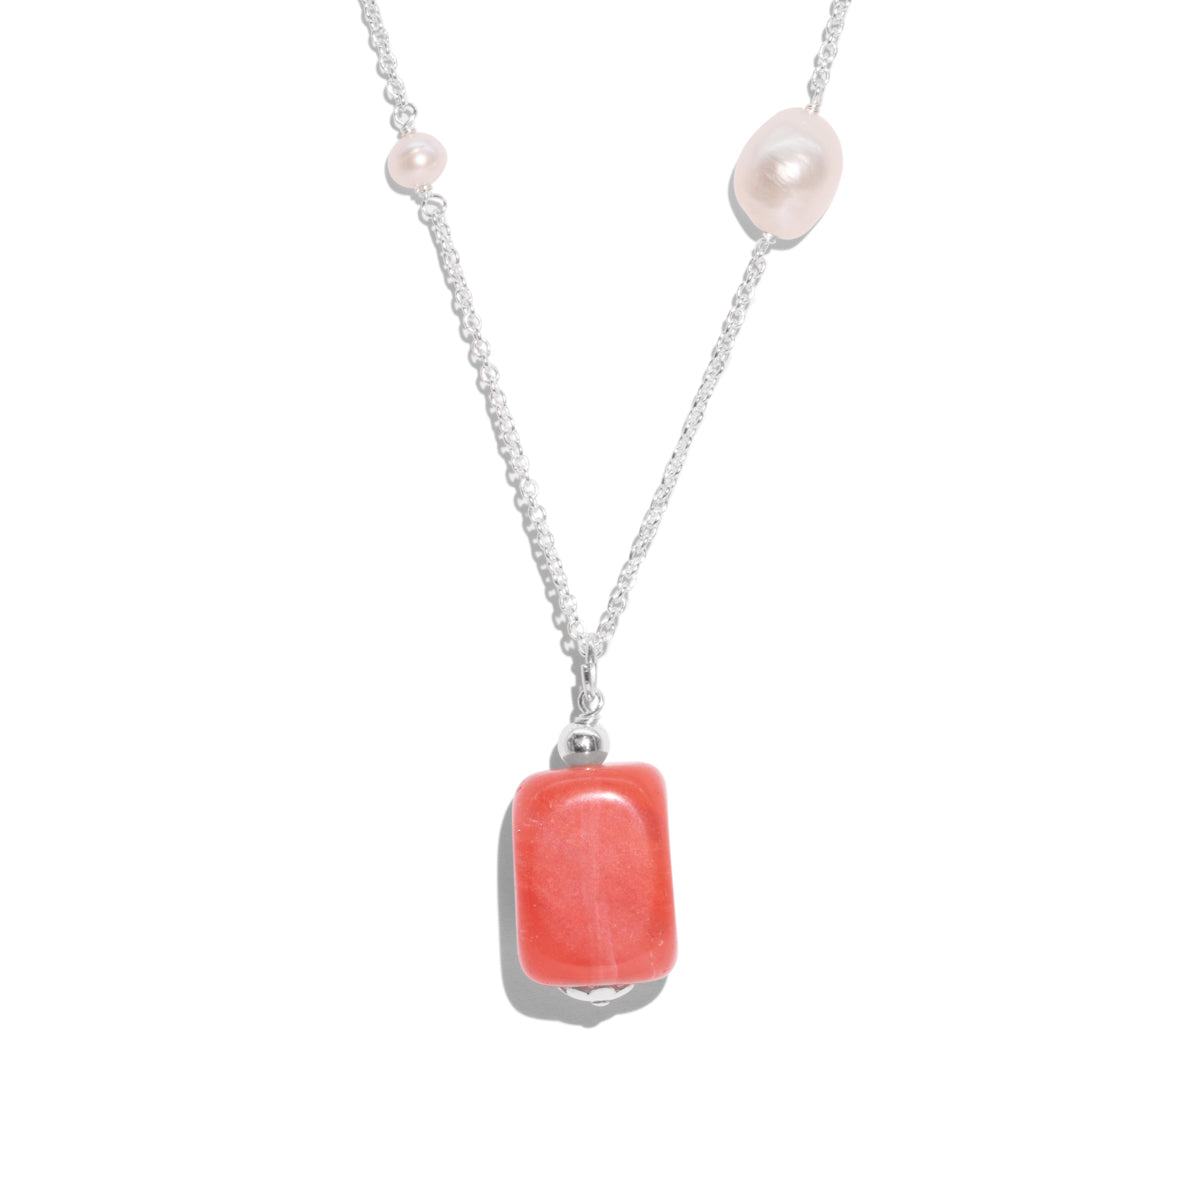 The Silver Cherry Drop Necklace